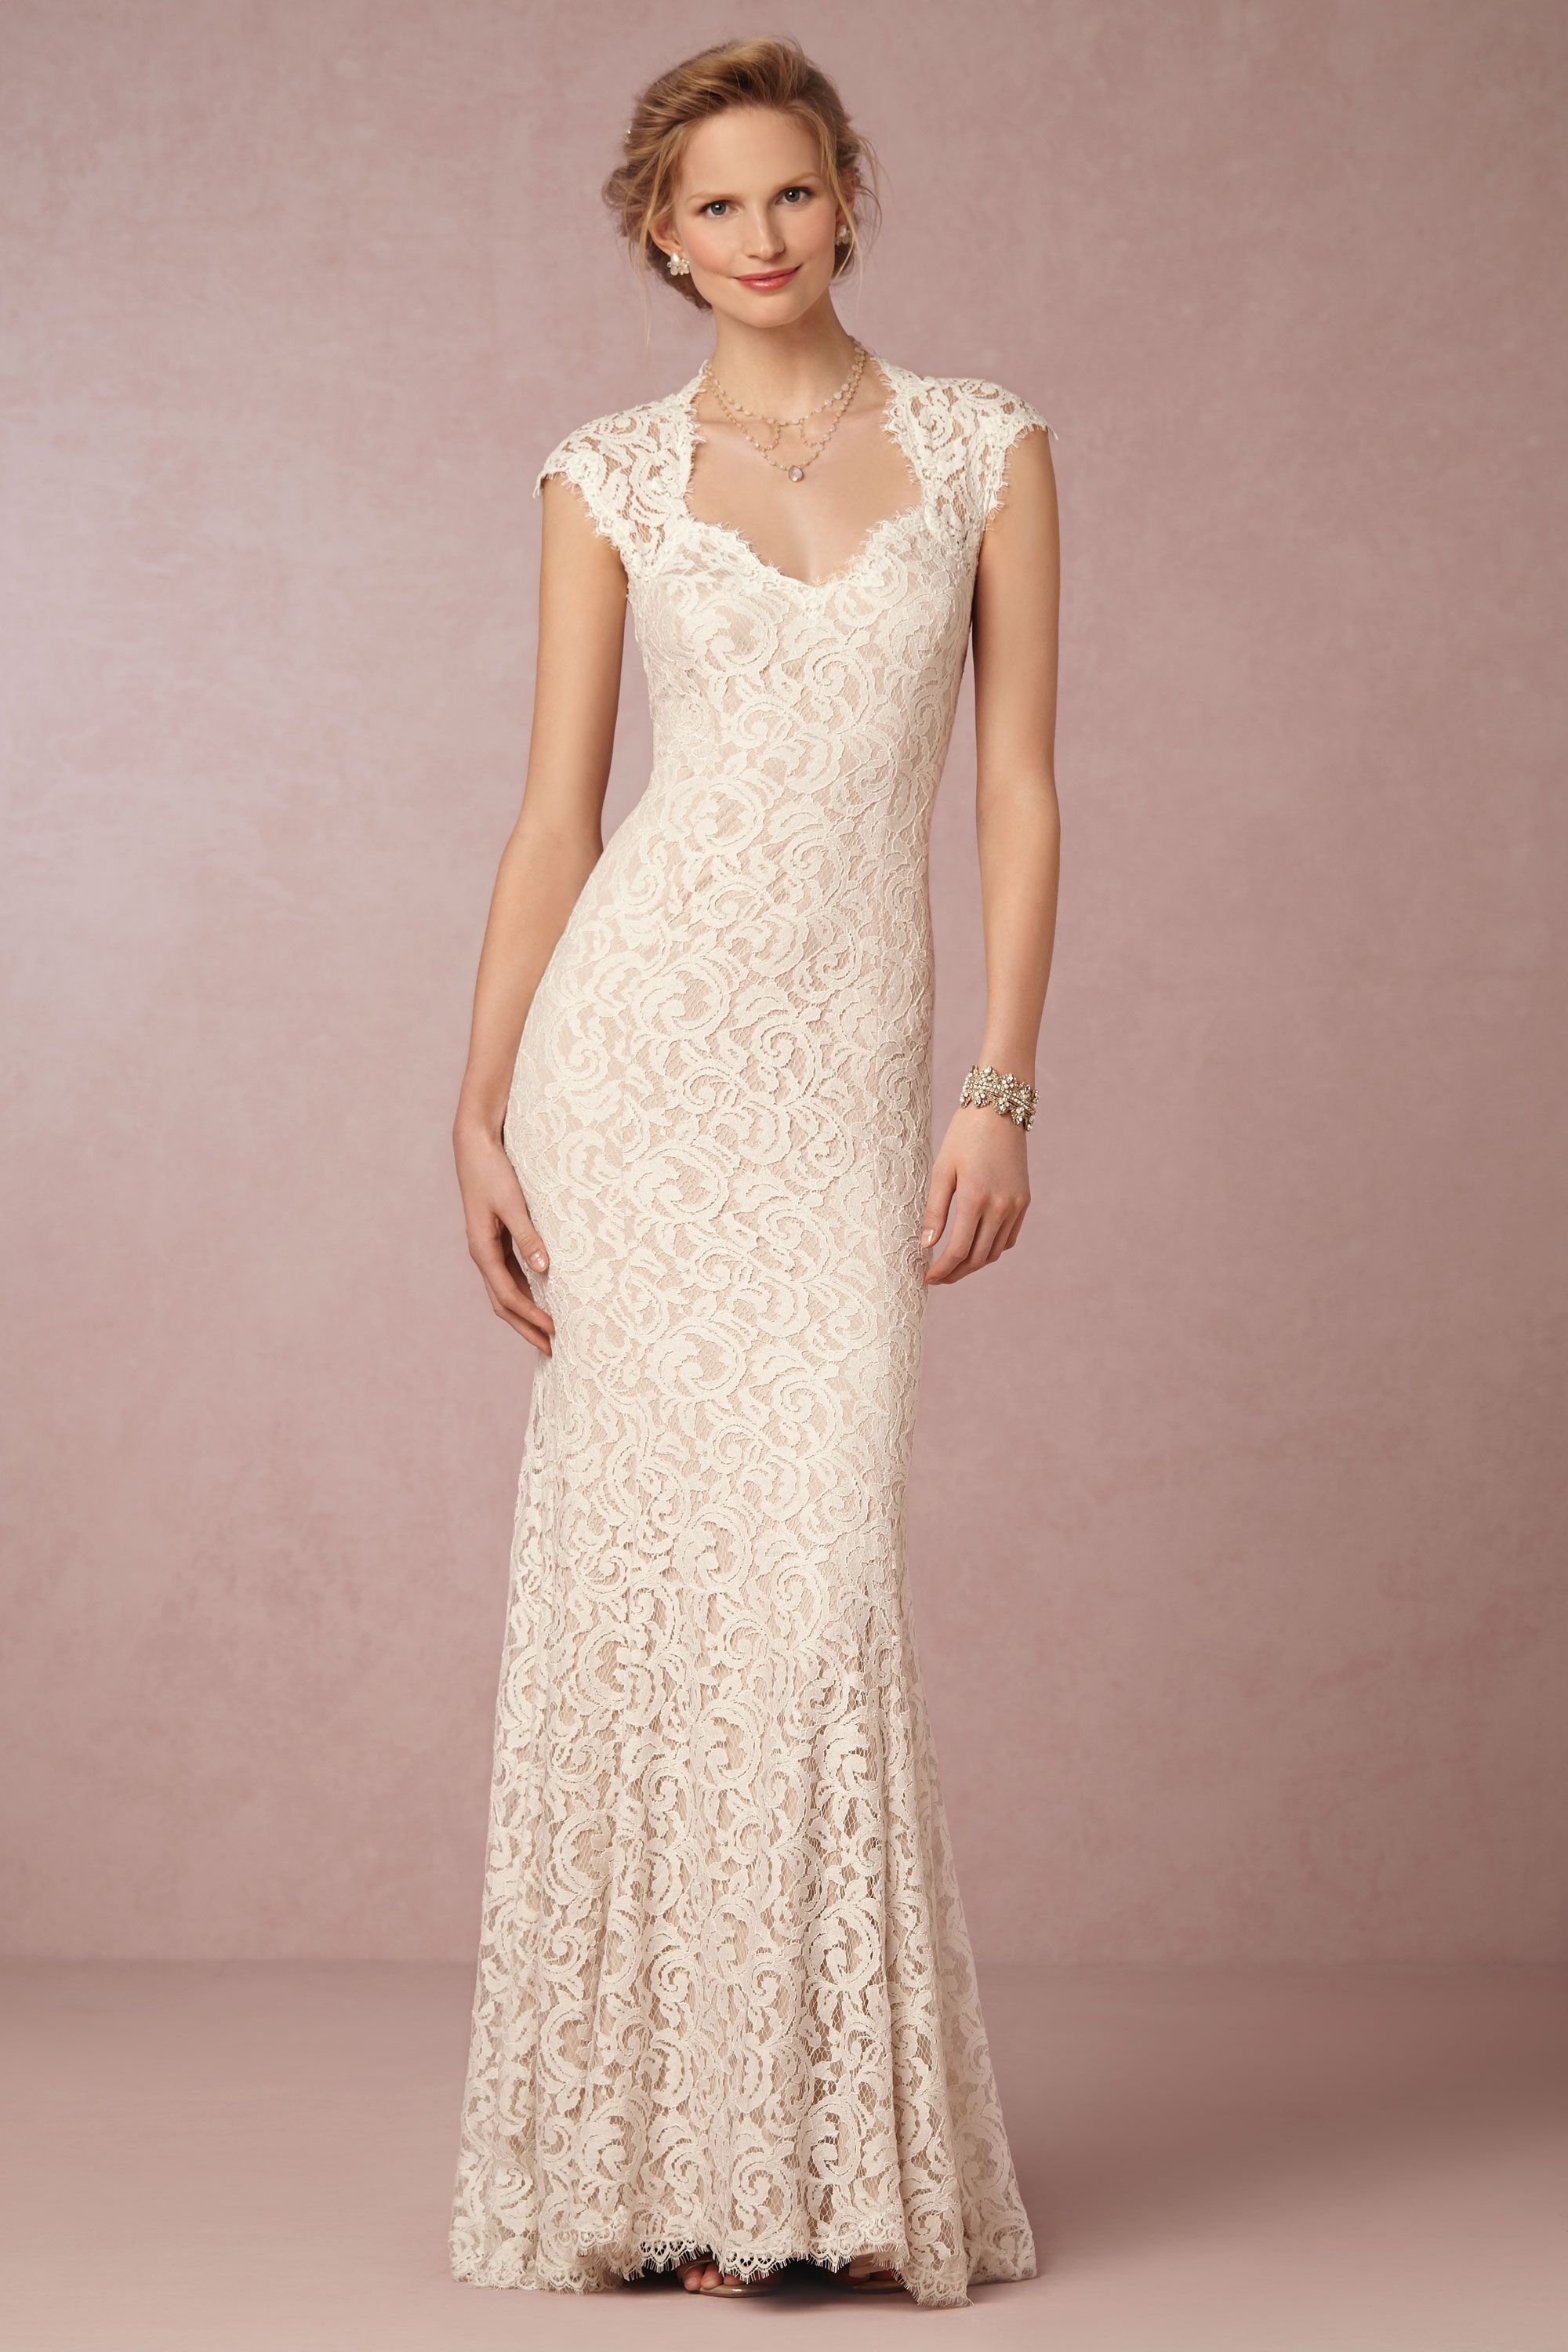 Marivana Lace Gown from @BHLDN | Weddings | Pinterest | Boda ...